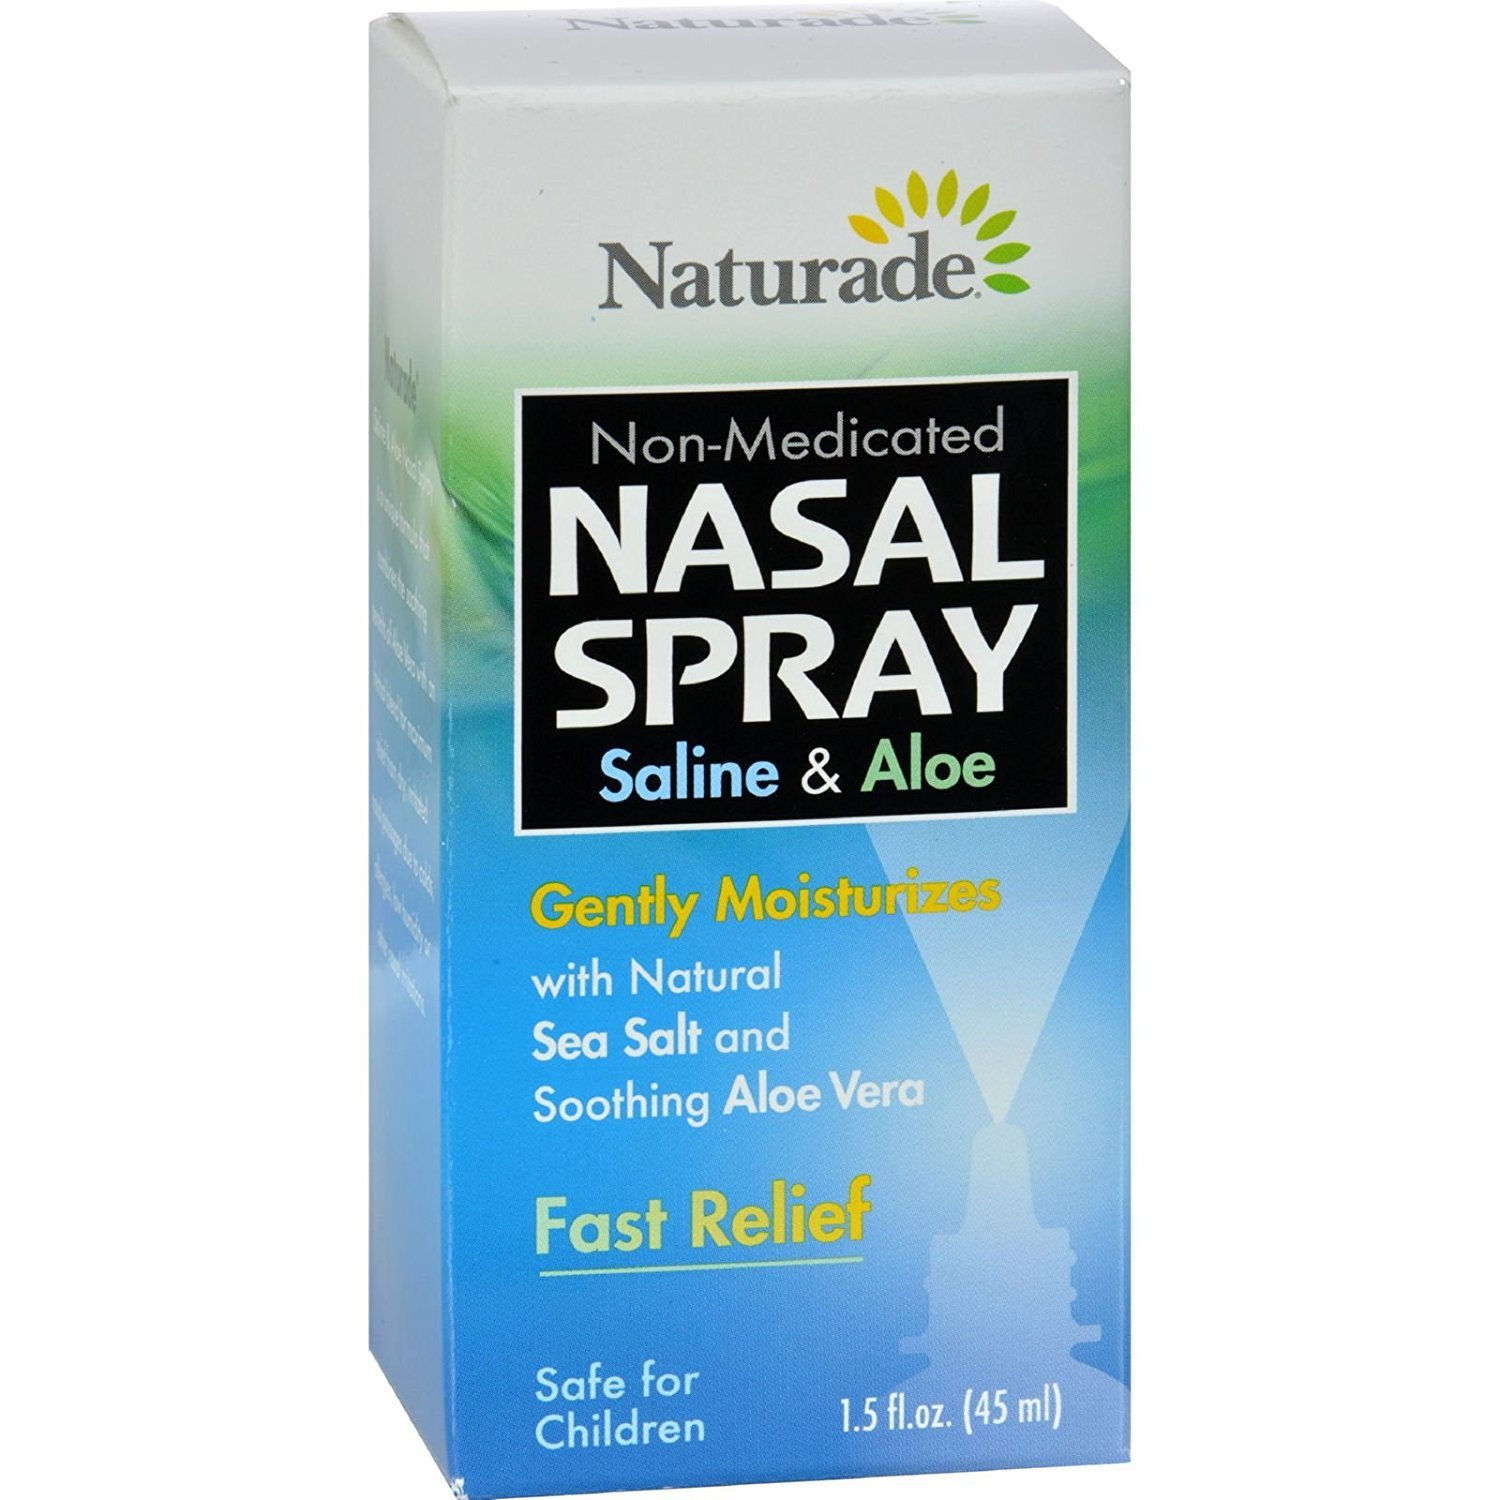 NATURADE SALINE & ALOE NASAL SPRAY, 1.5 FZ , 6 pack by Naturade